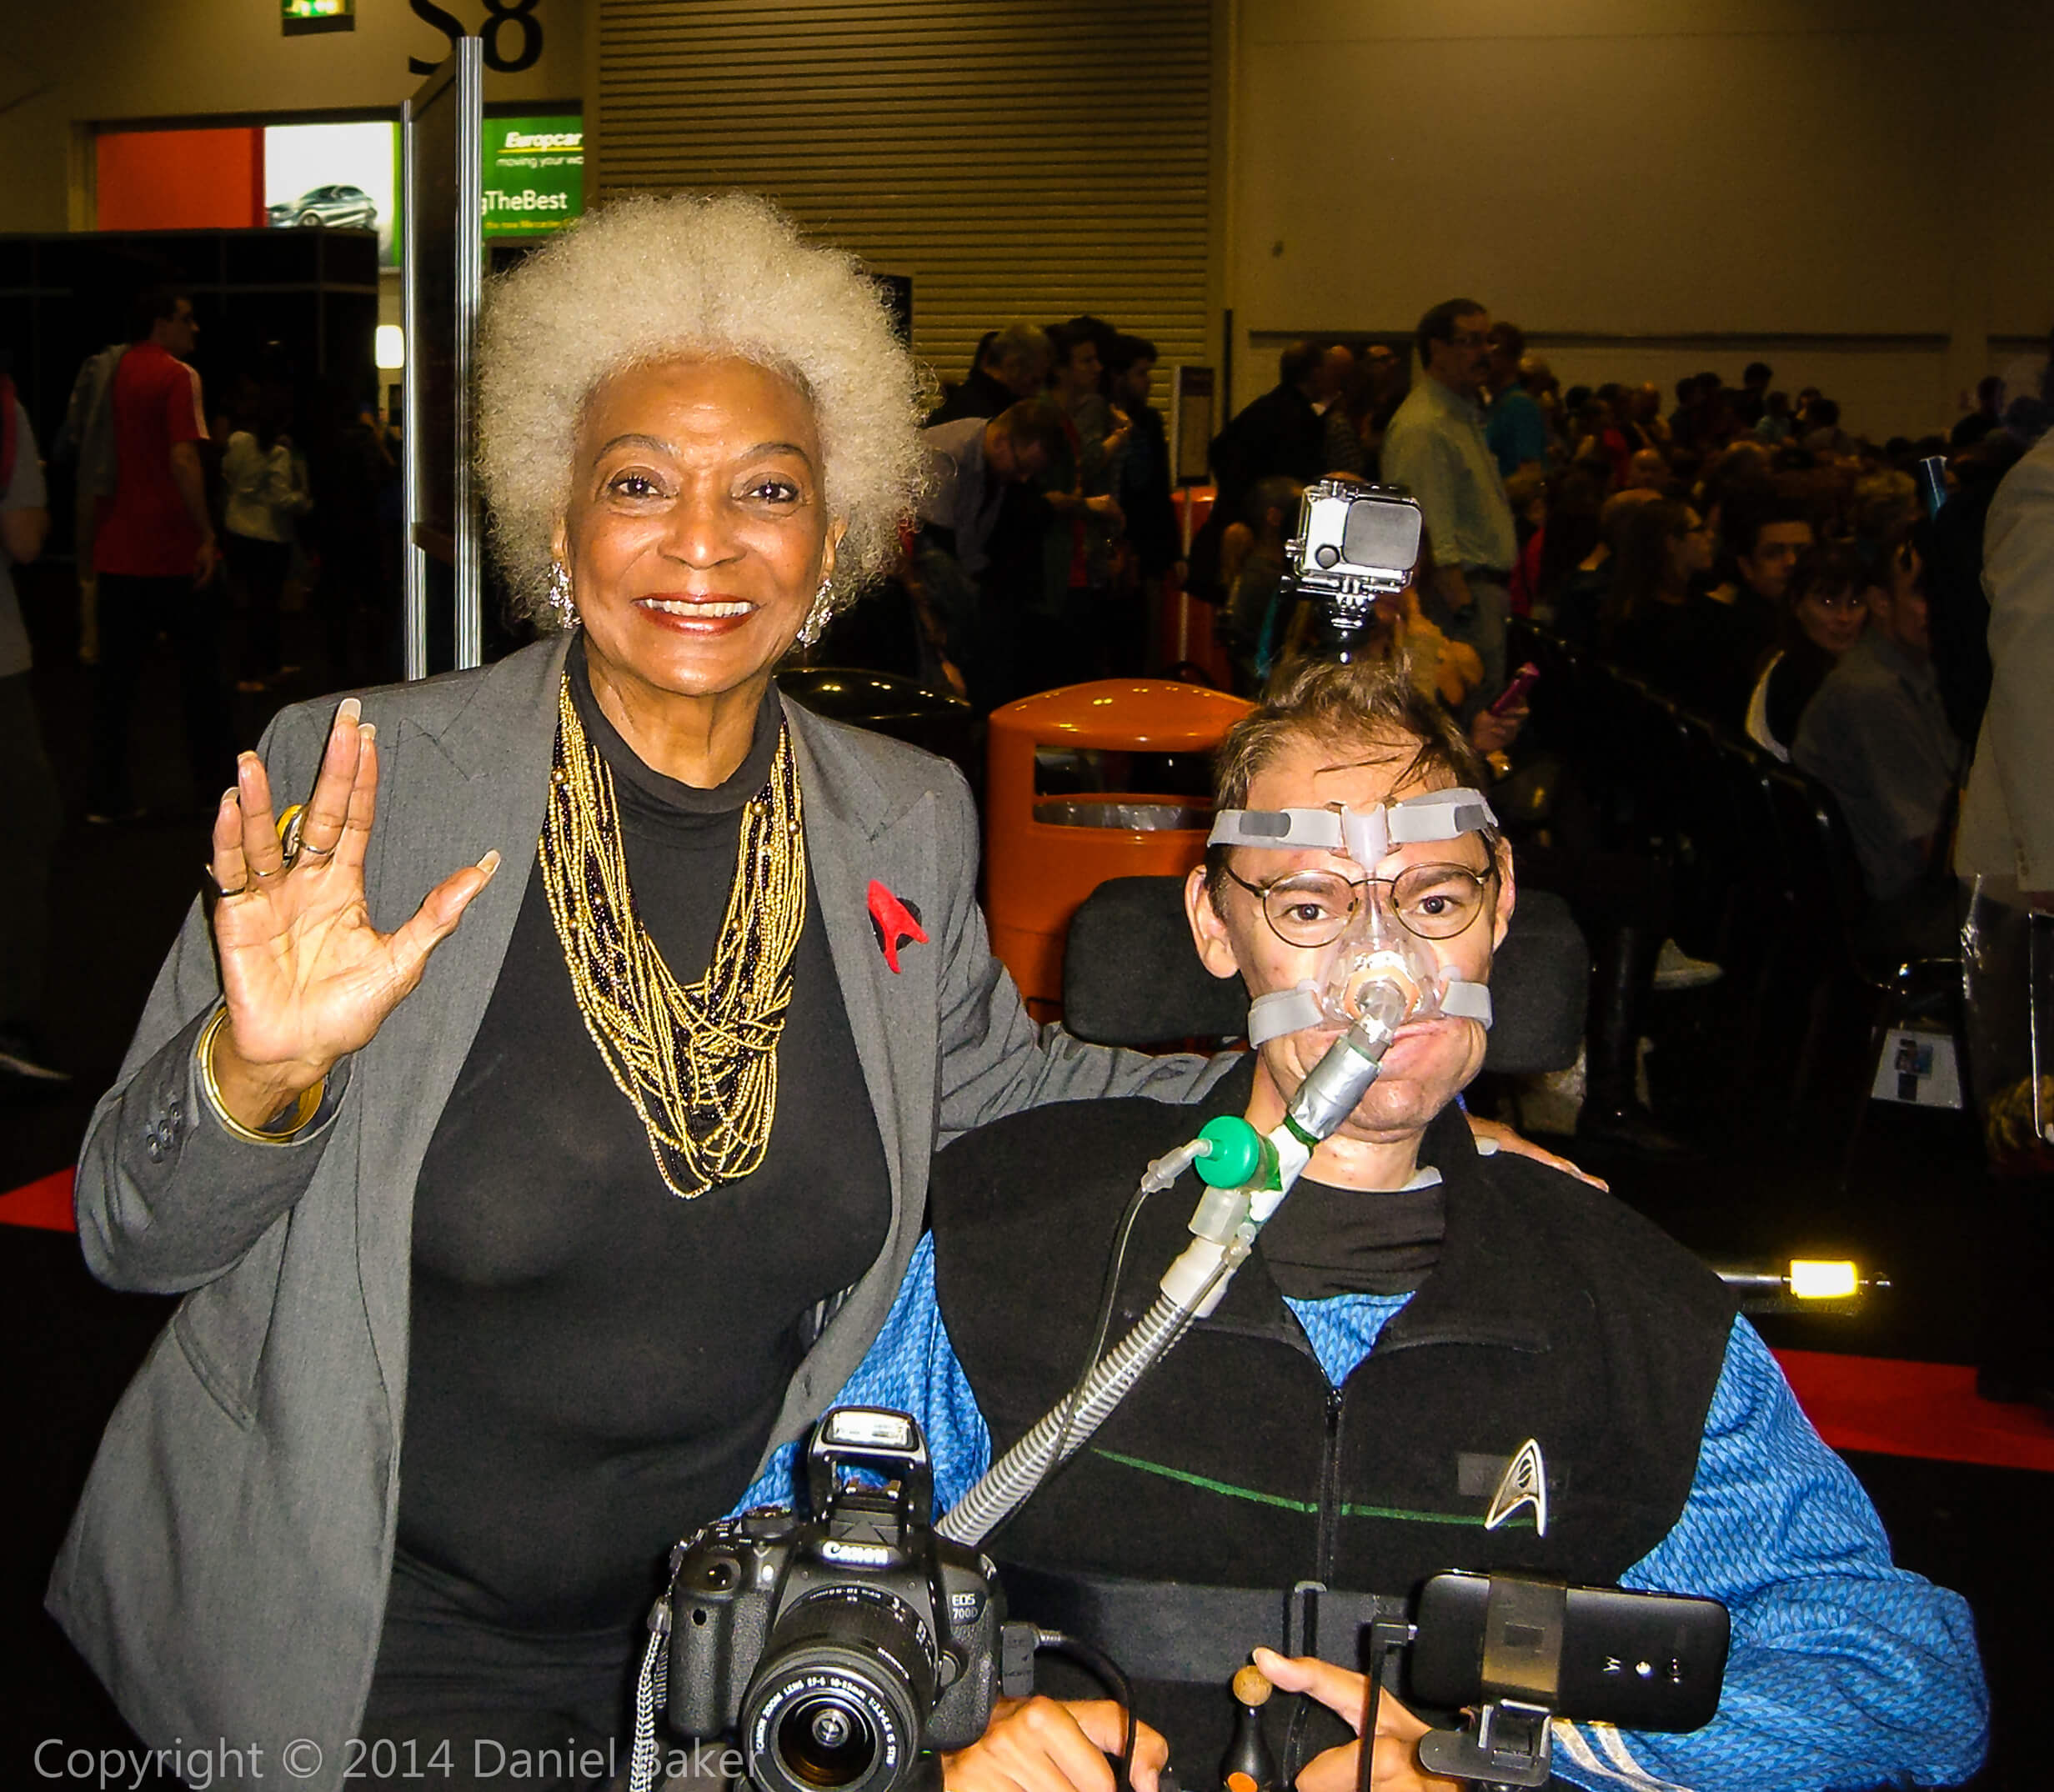 Nichelle Nichols and Daniel Baker at Destination Star Trek 3